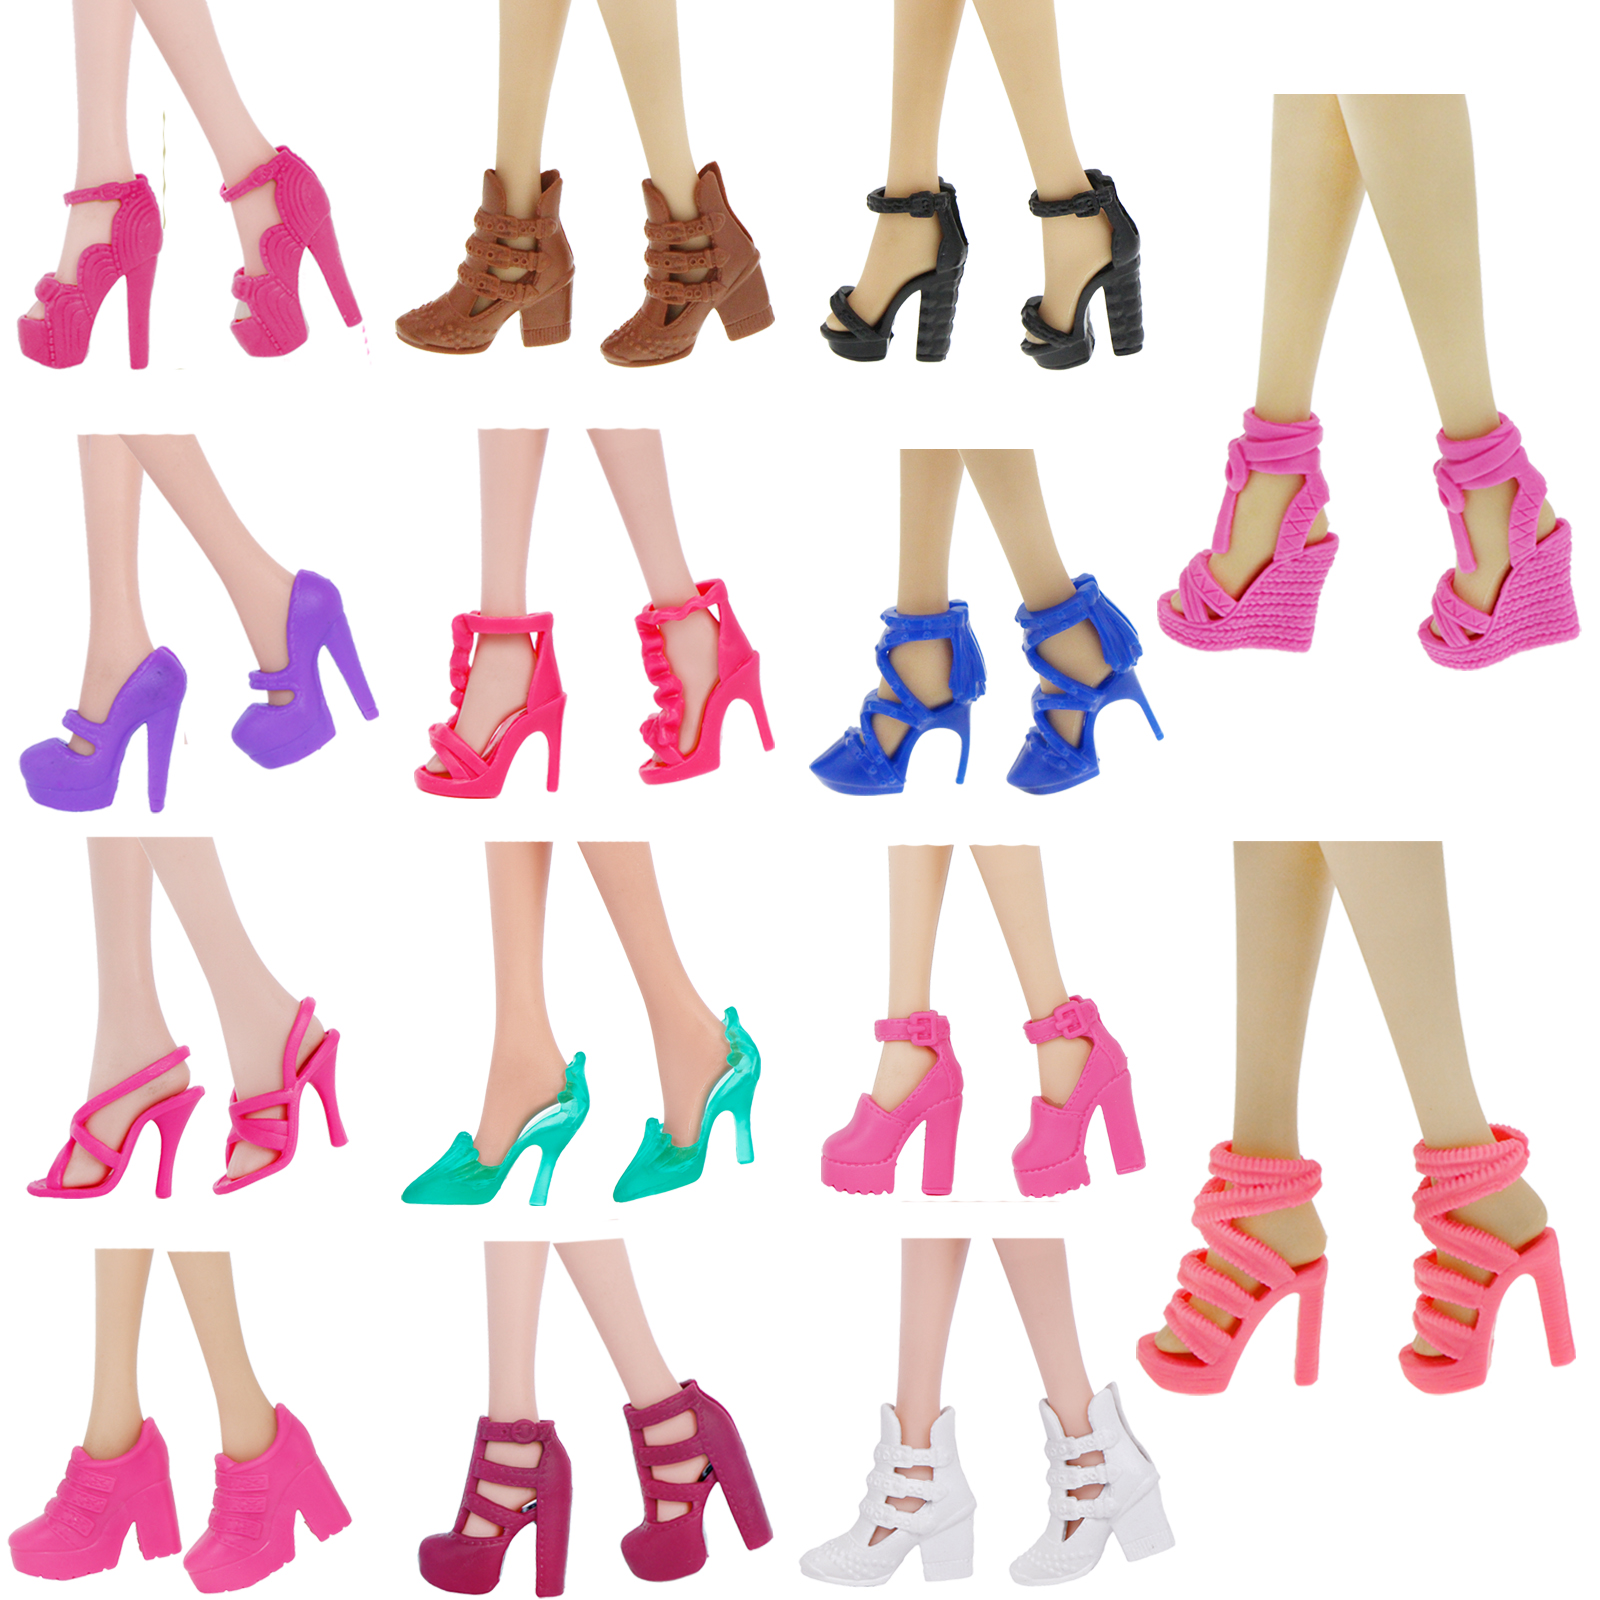 3049b3bc9 High-Quality-1-Pair-Lady-Shoes-Fashion-High-Heel-Summer-Sandals -Evening-Dinner-Party-Clothes-Accessories.jpg